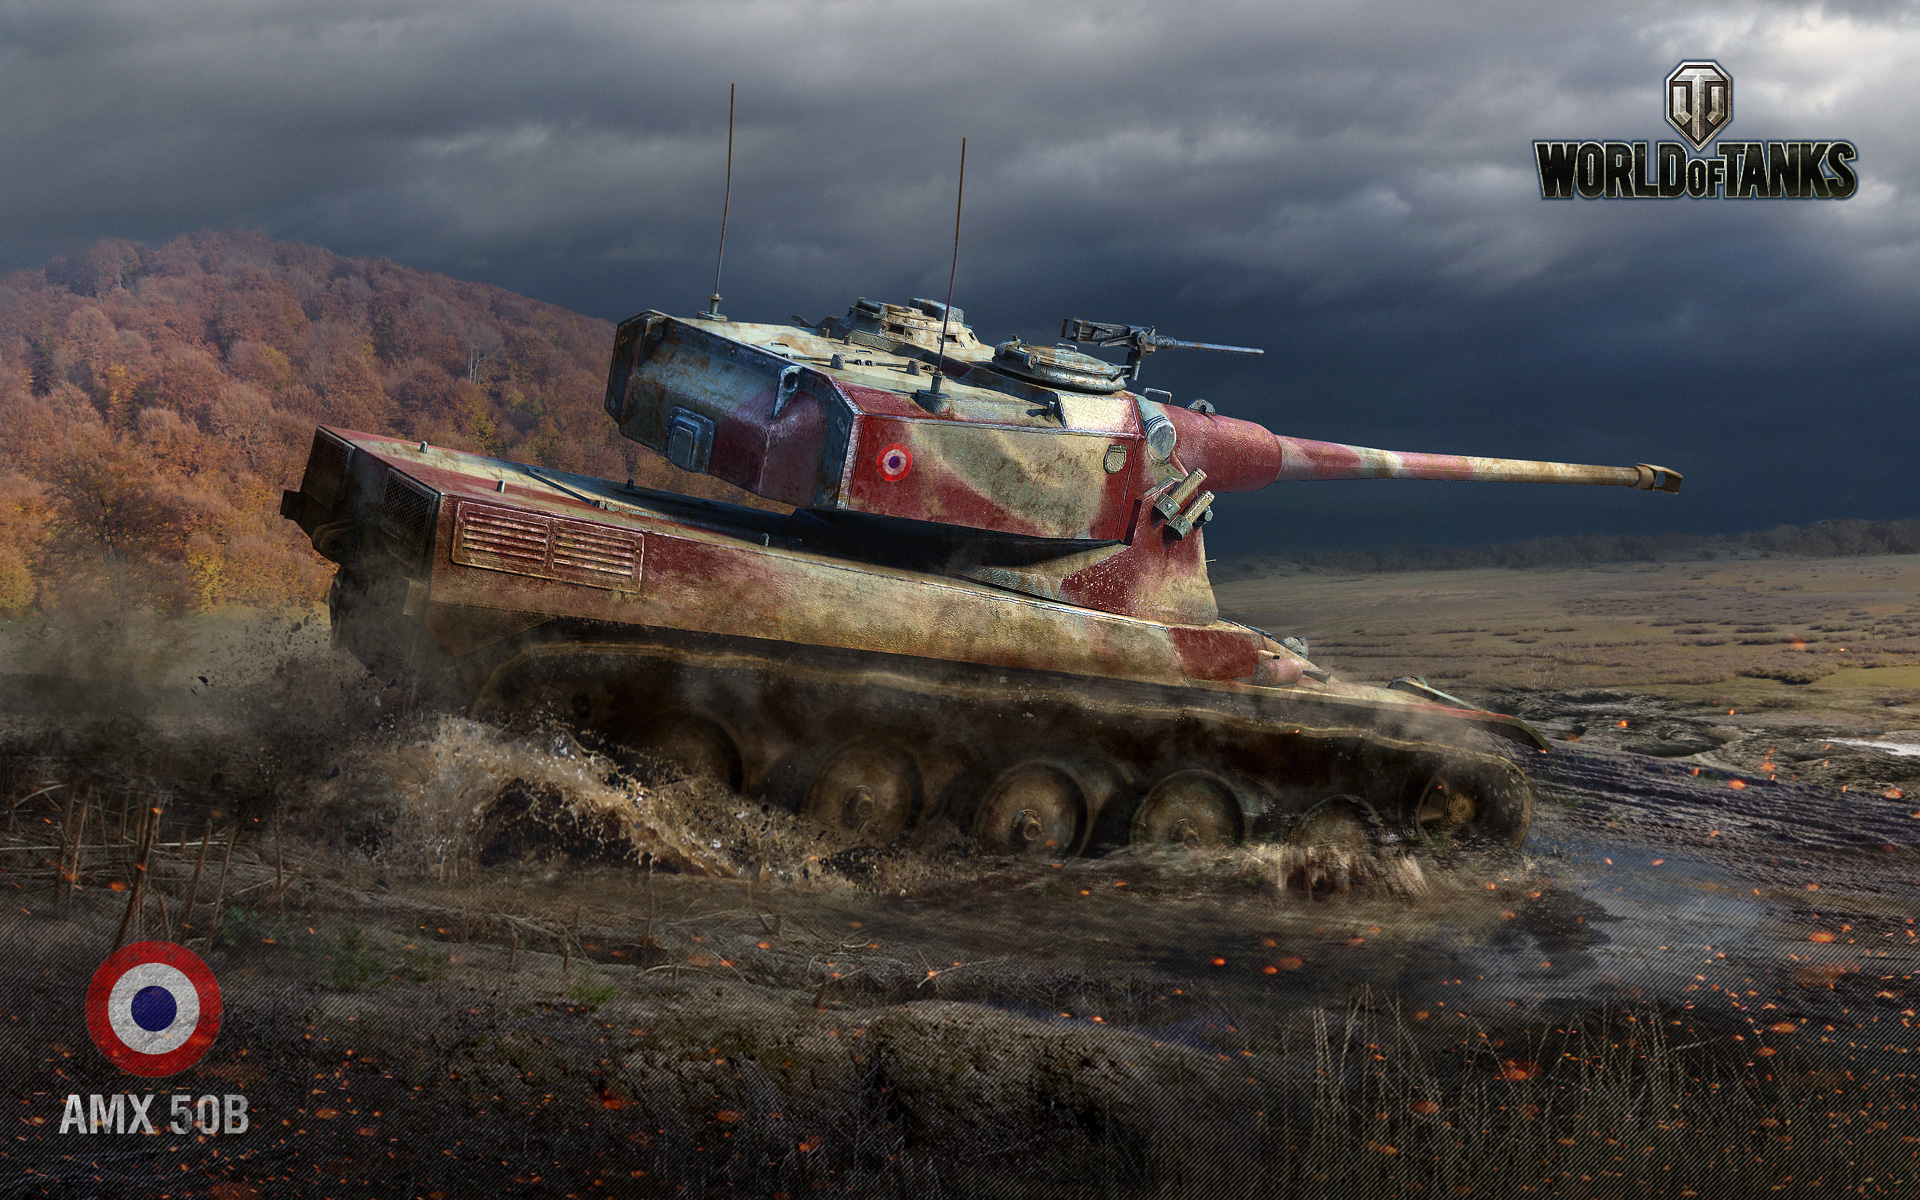 world of tanks, amx 50b, танк